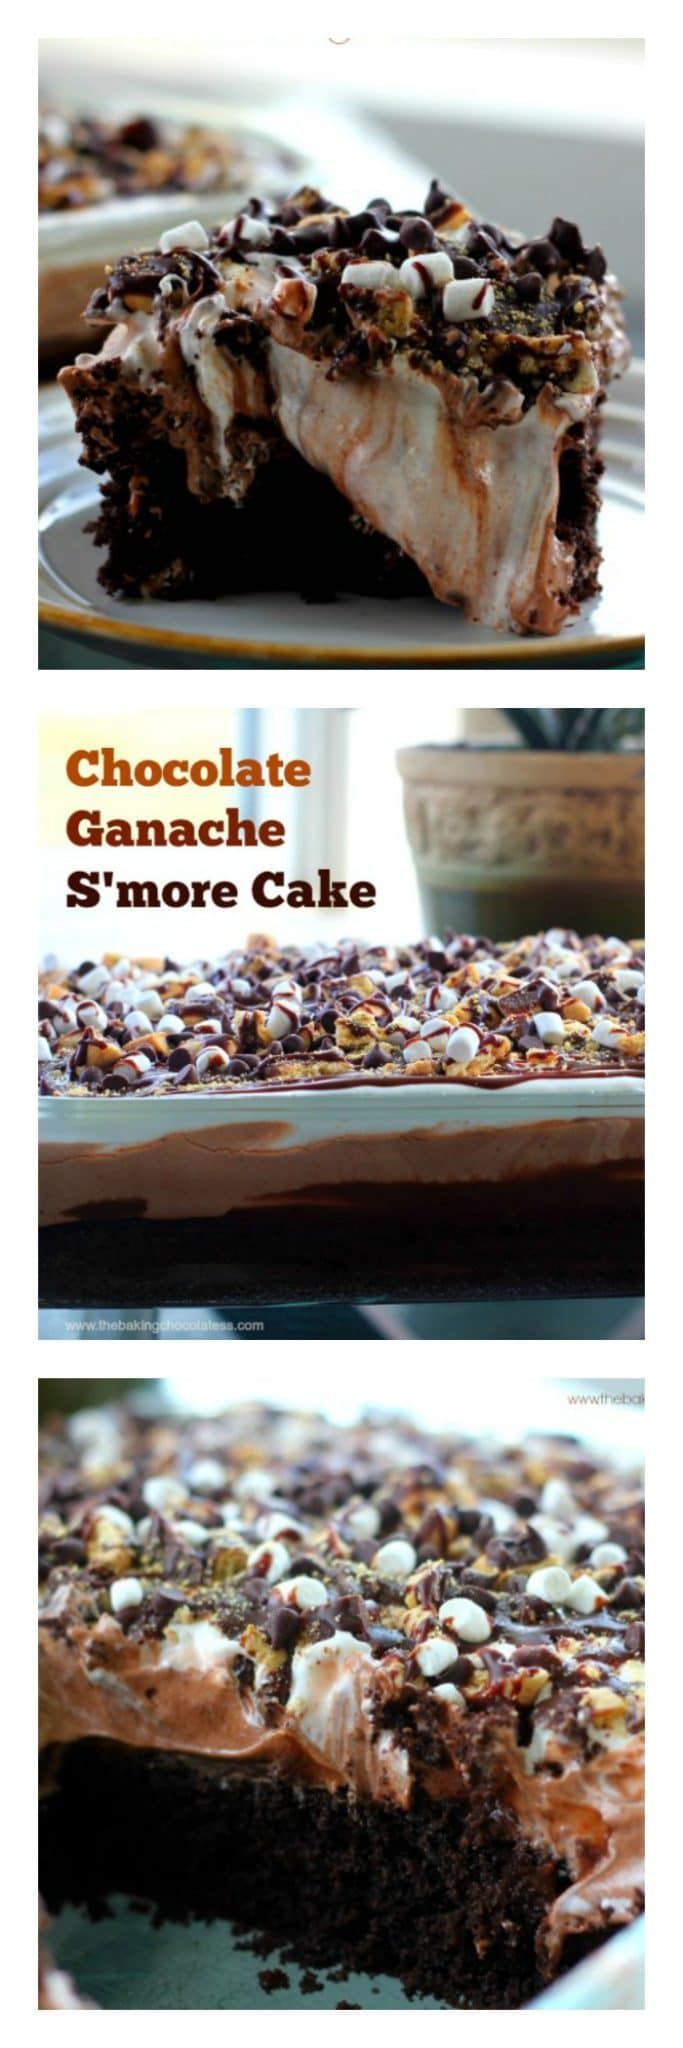 Chocolate Ganache S'More Cake {It's What Sweet Dreams are Made of}